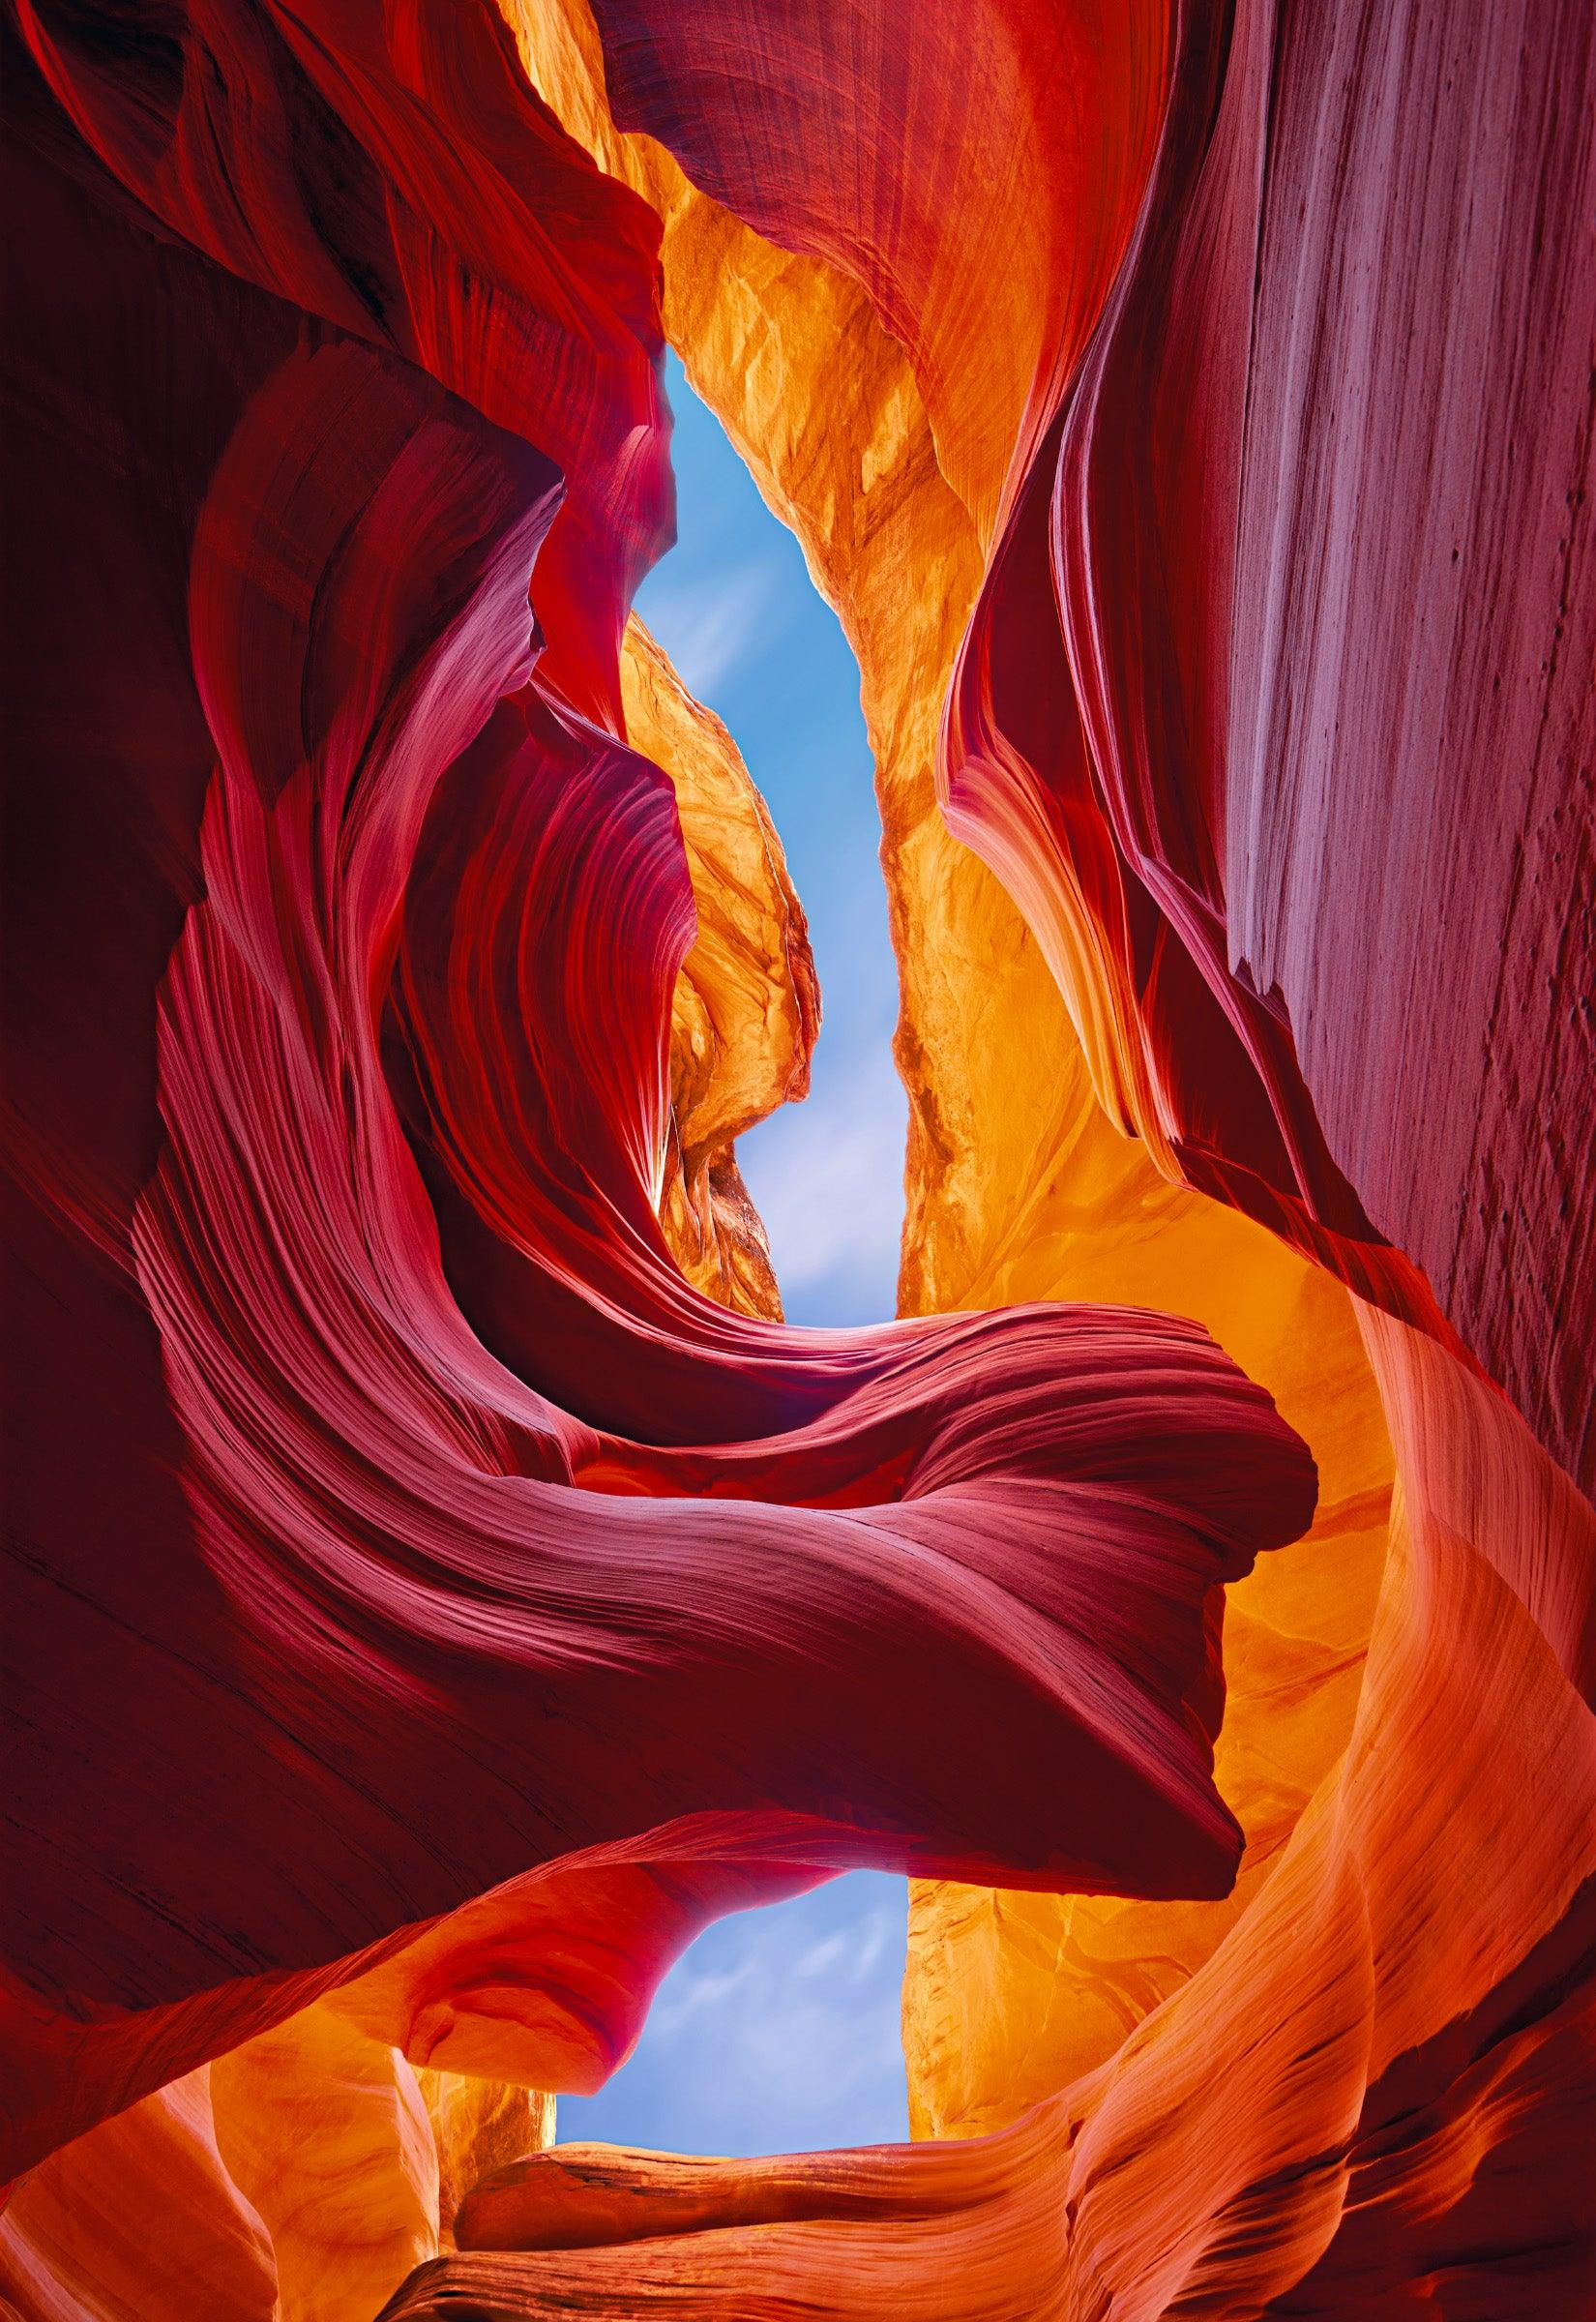 Looking up at the blue sky through the pink red and orange sandstone walls of Antelope Canyon Arizona